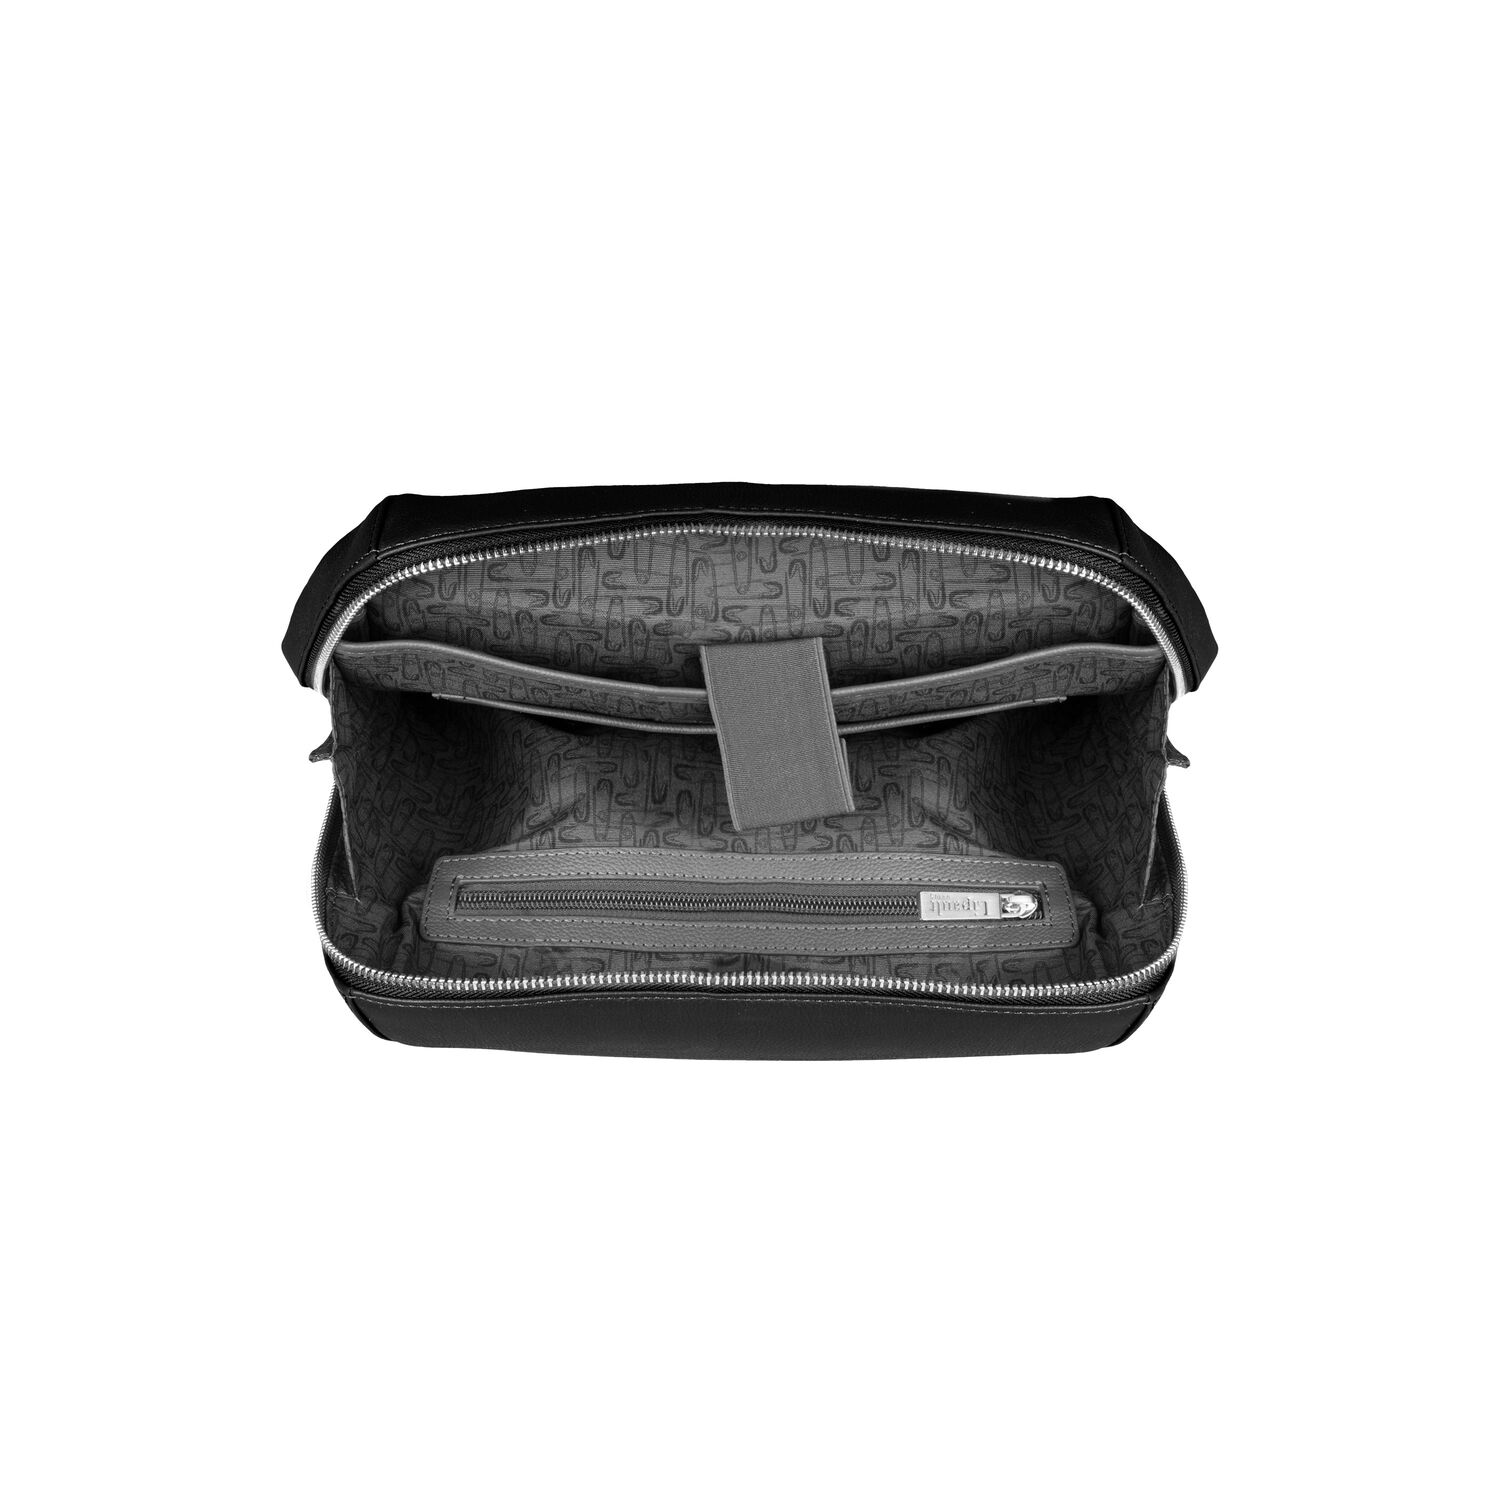 ae2a3d86c4b7 Lipault Plume Elegance Laptop Backpack M in the color Black Leather.